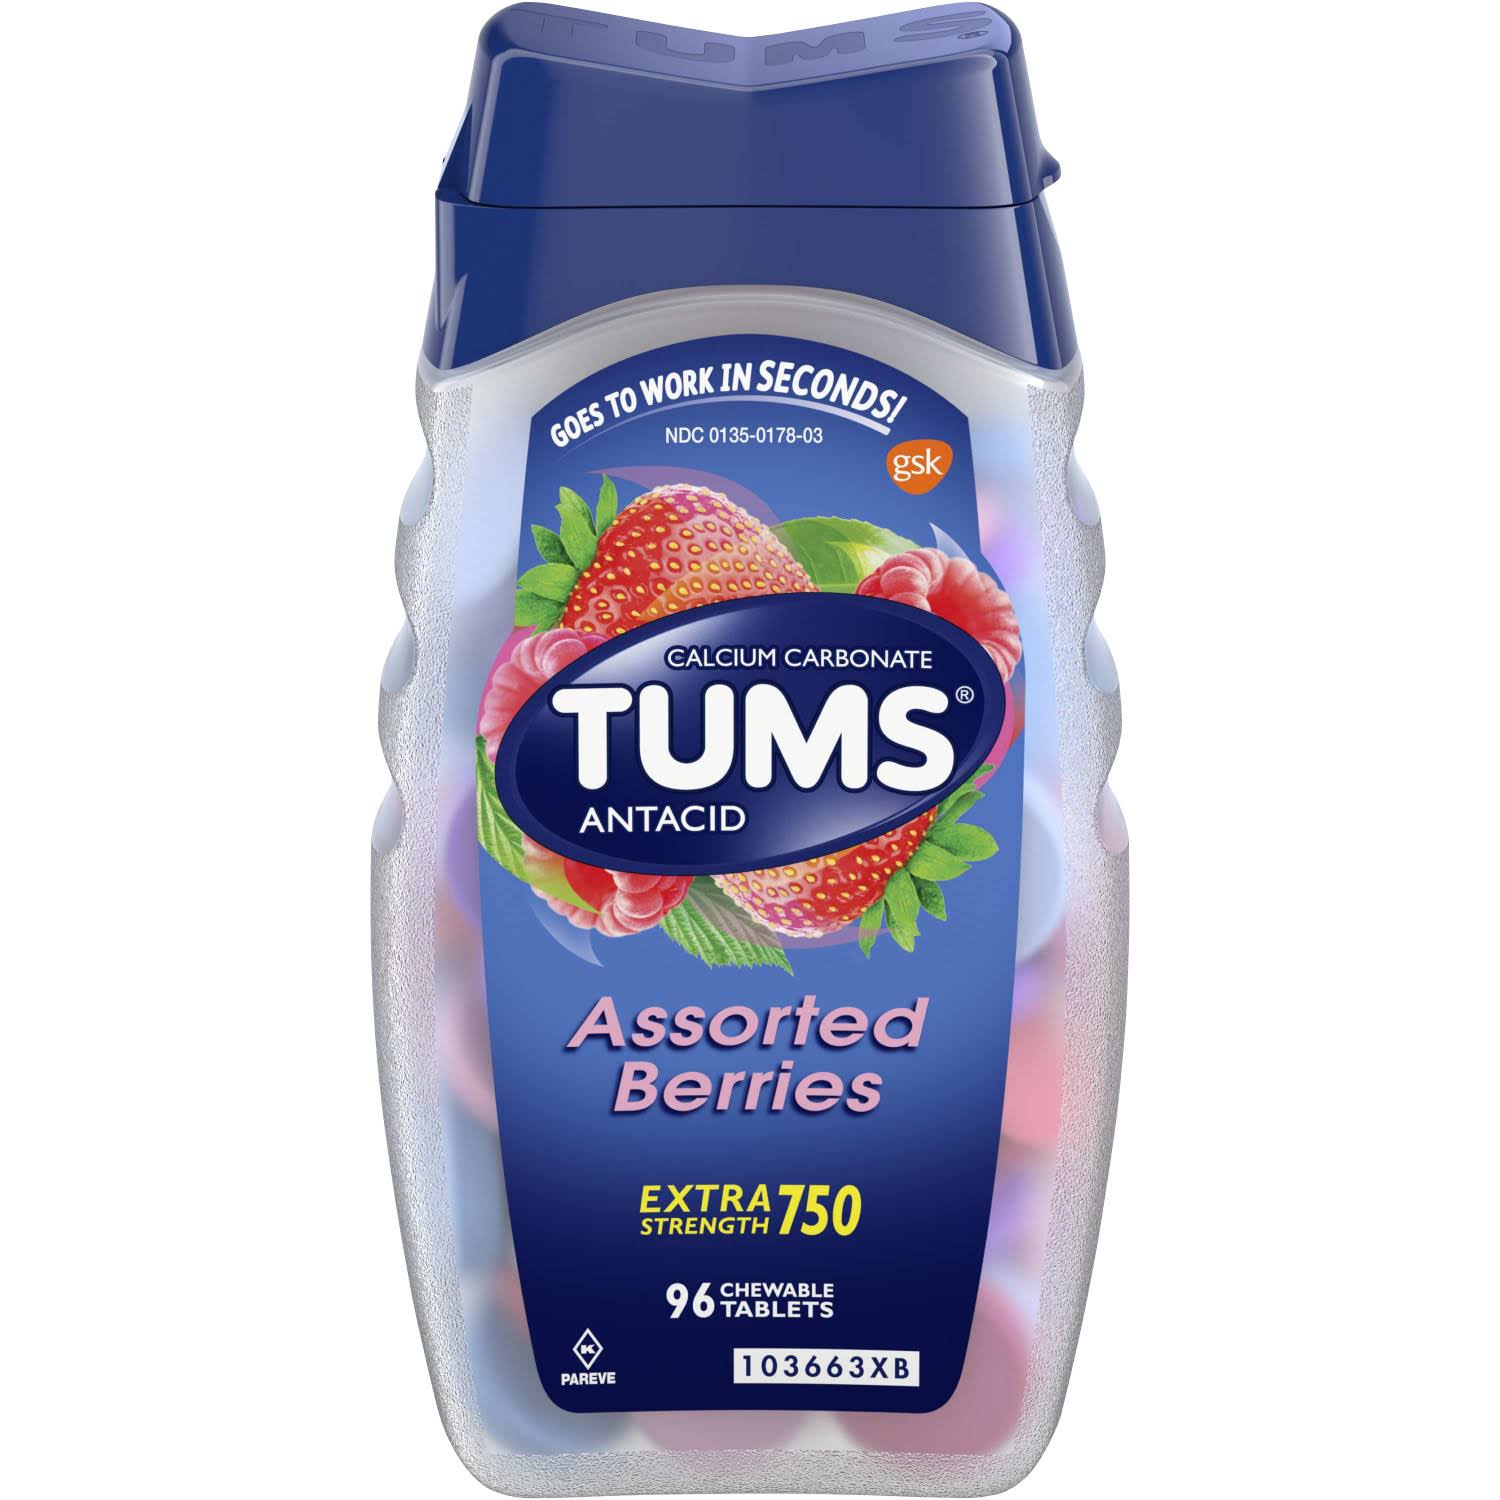 Tums Calcium Carbonate Antacid - 96 Chewable Tablets, Assorted Berries